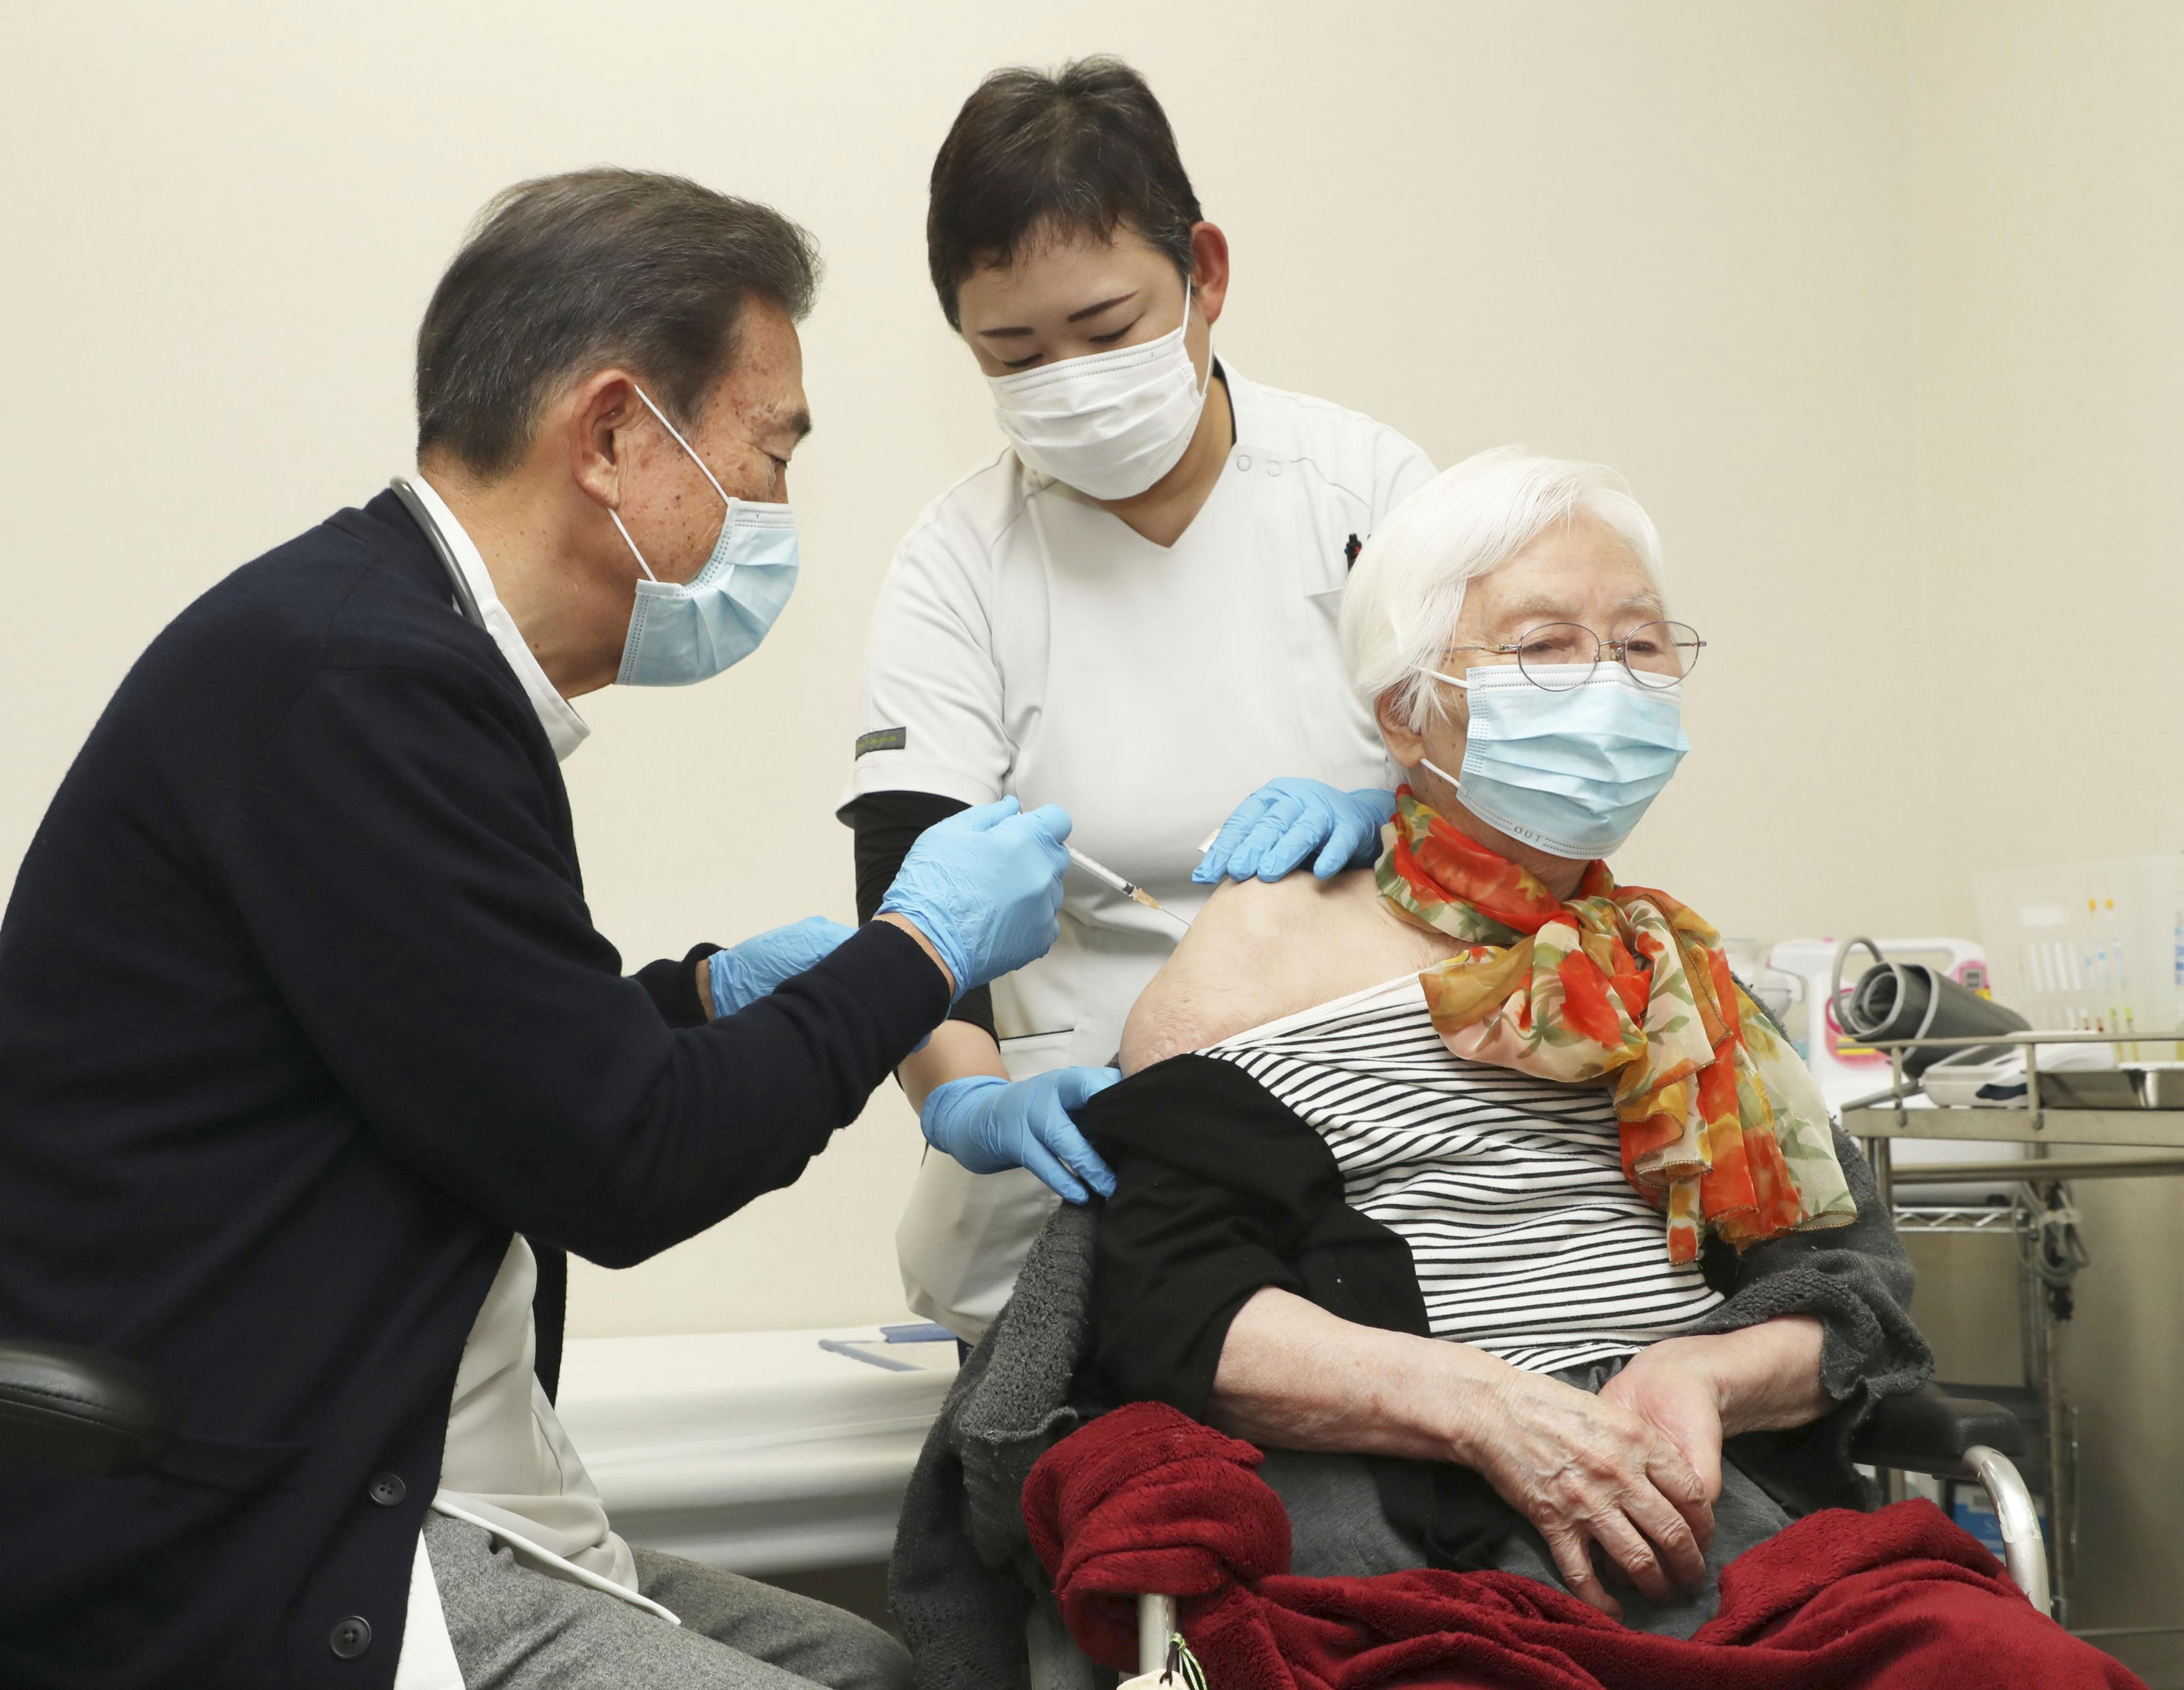 An elderly woman receives a coronavirus disease (COVID-19) vaccine shots at a nursery home in Tsu in Mie Prefecture, central Japan, April 12, 2021, in this photo released by Kyodo. Kyodo/via REUTERS